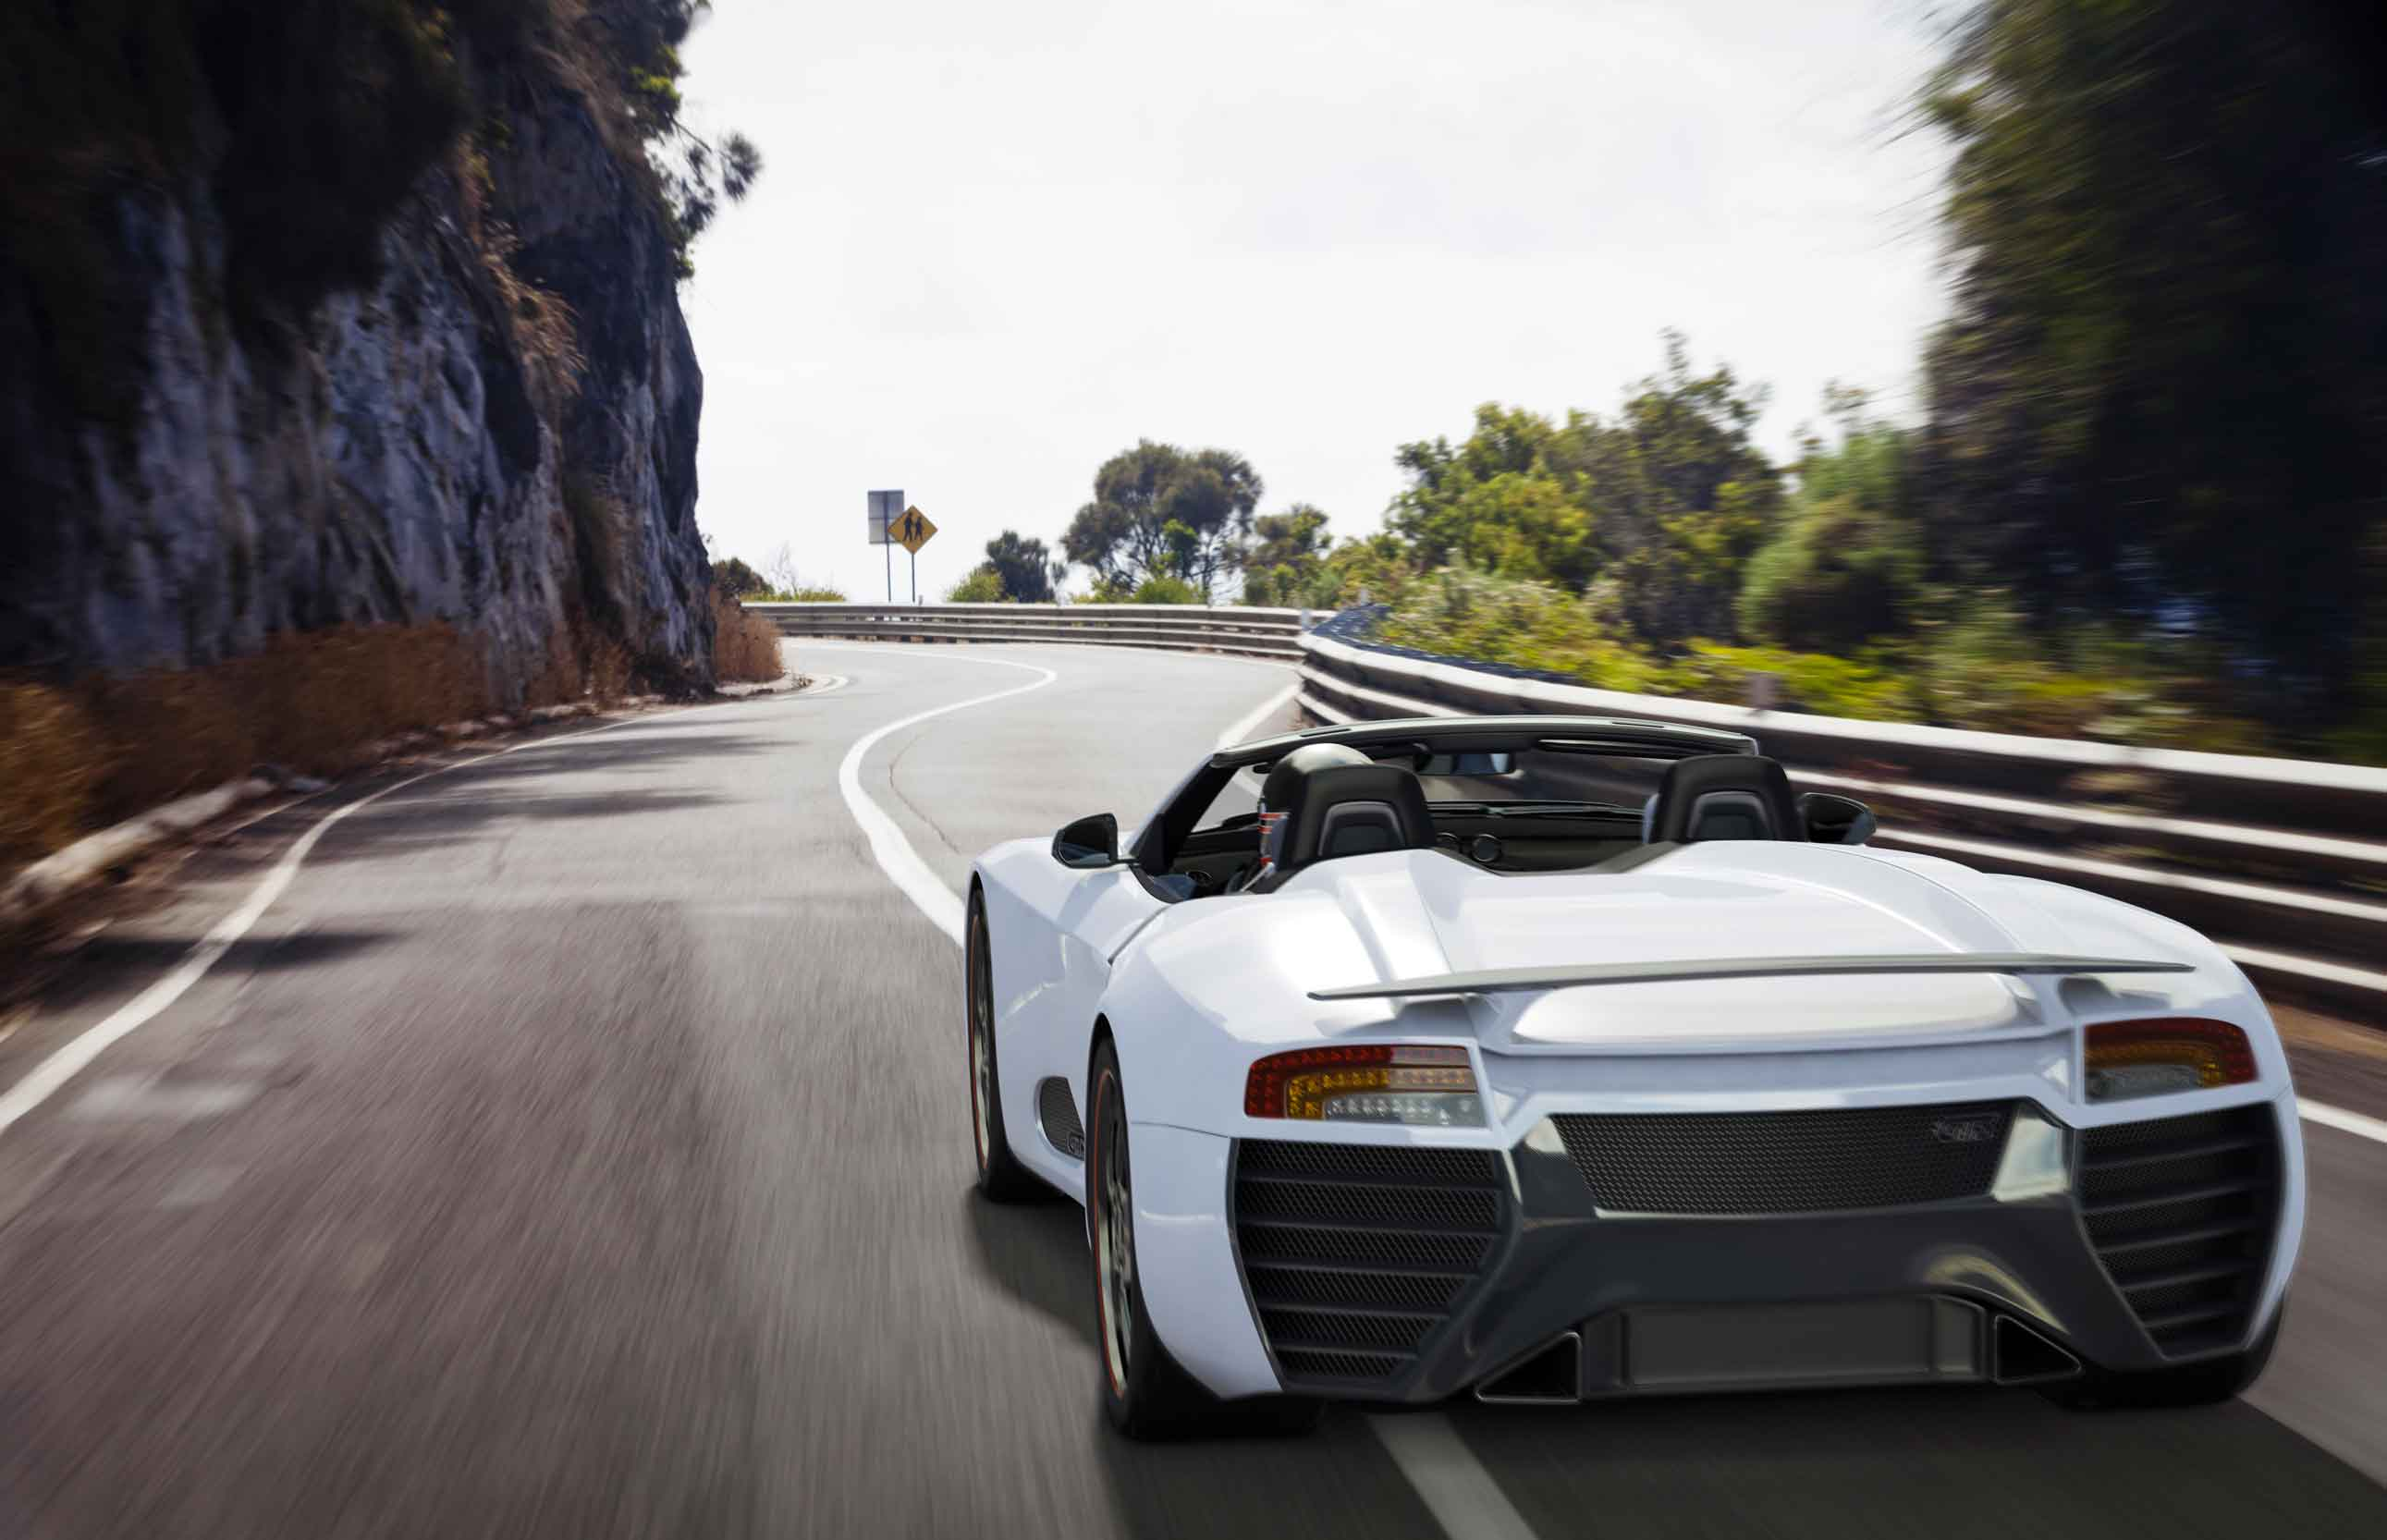 Are fast cars more expensive to insure? Not quite, and here's why.